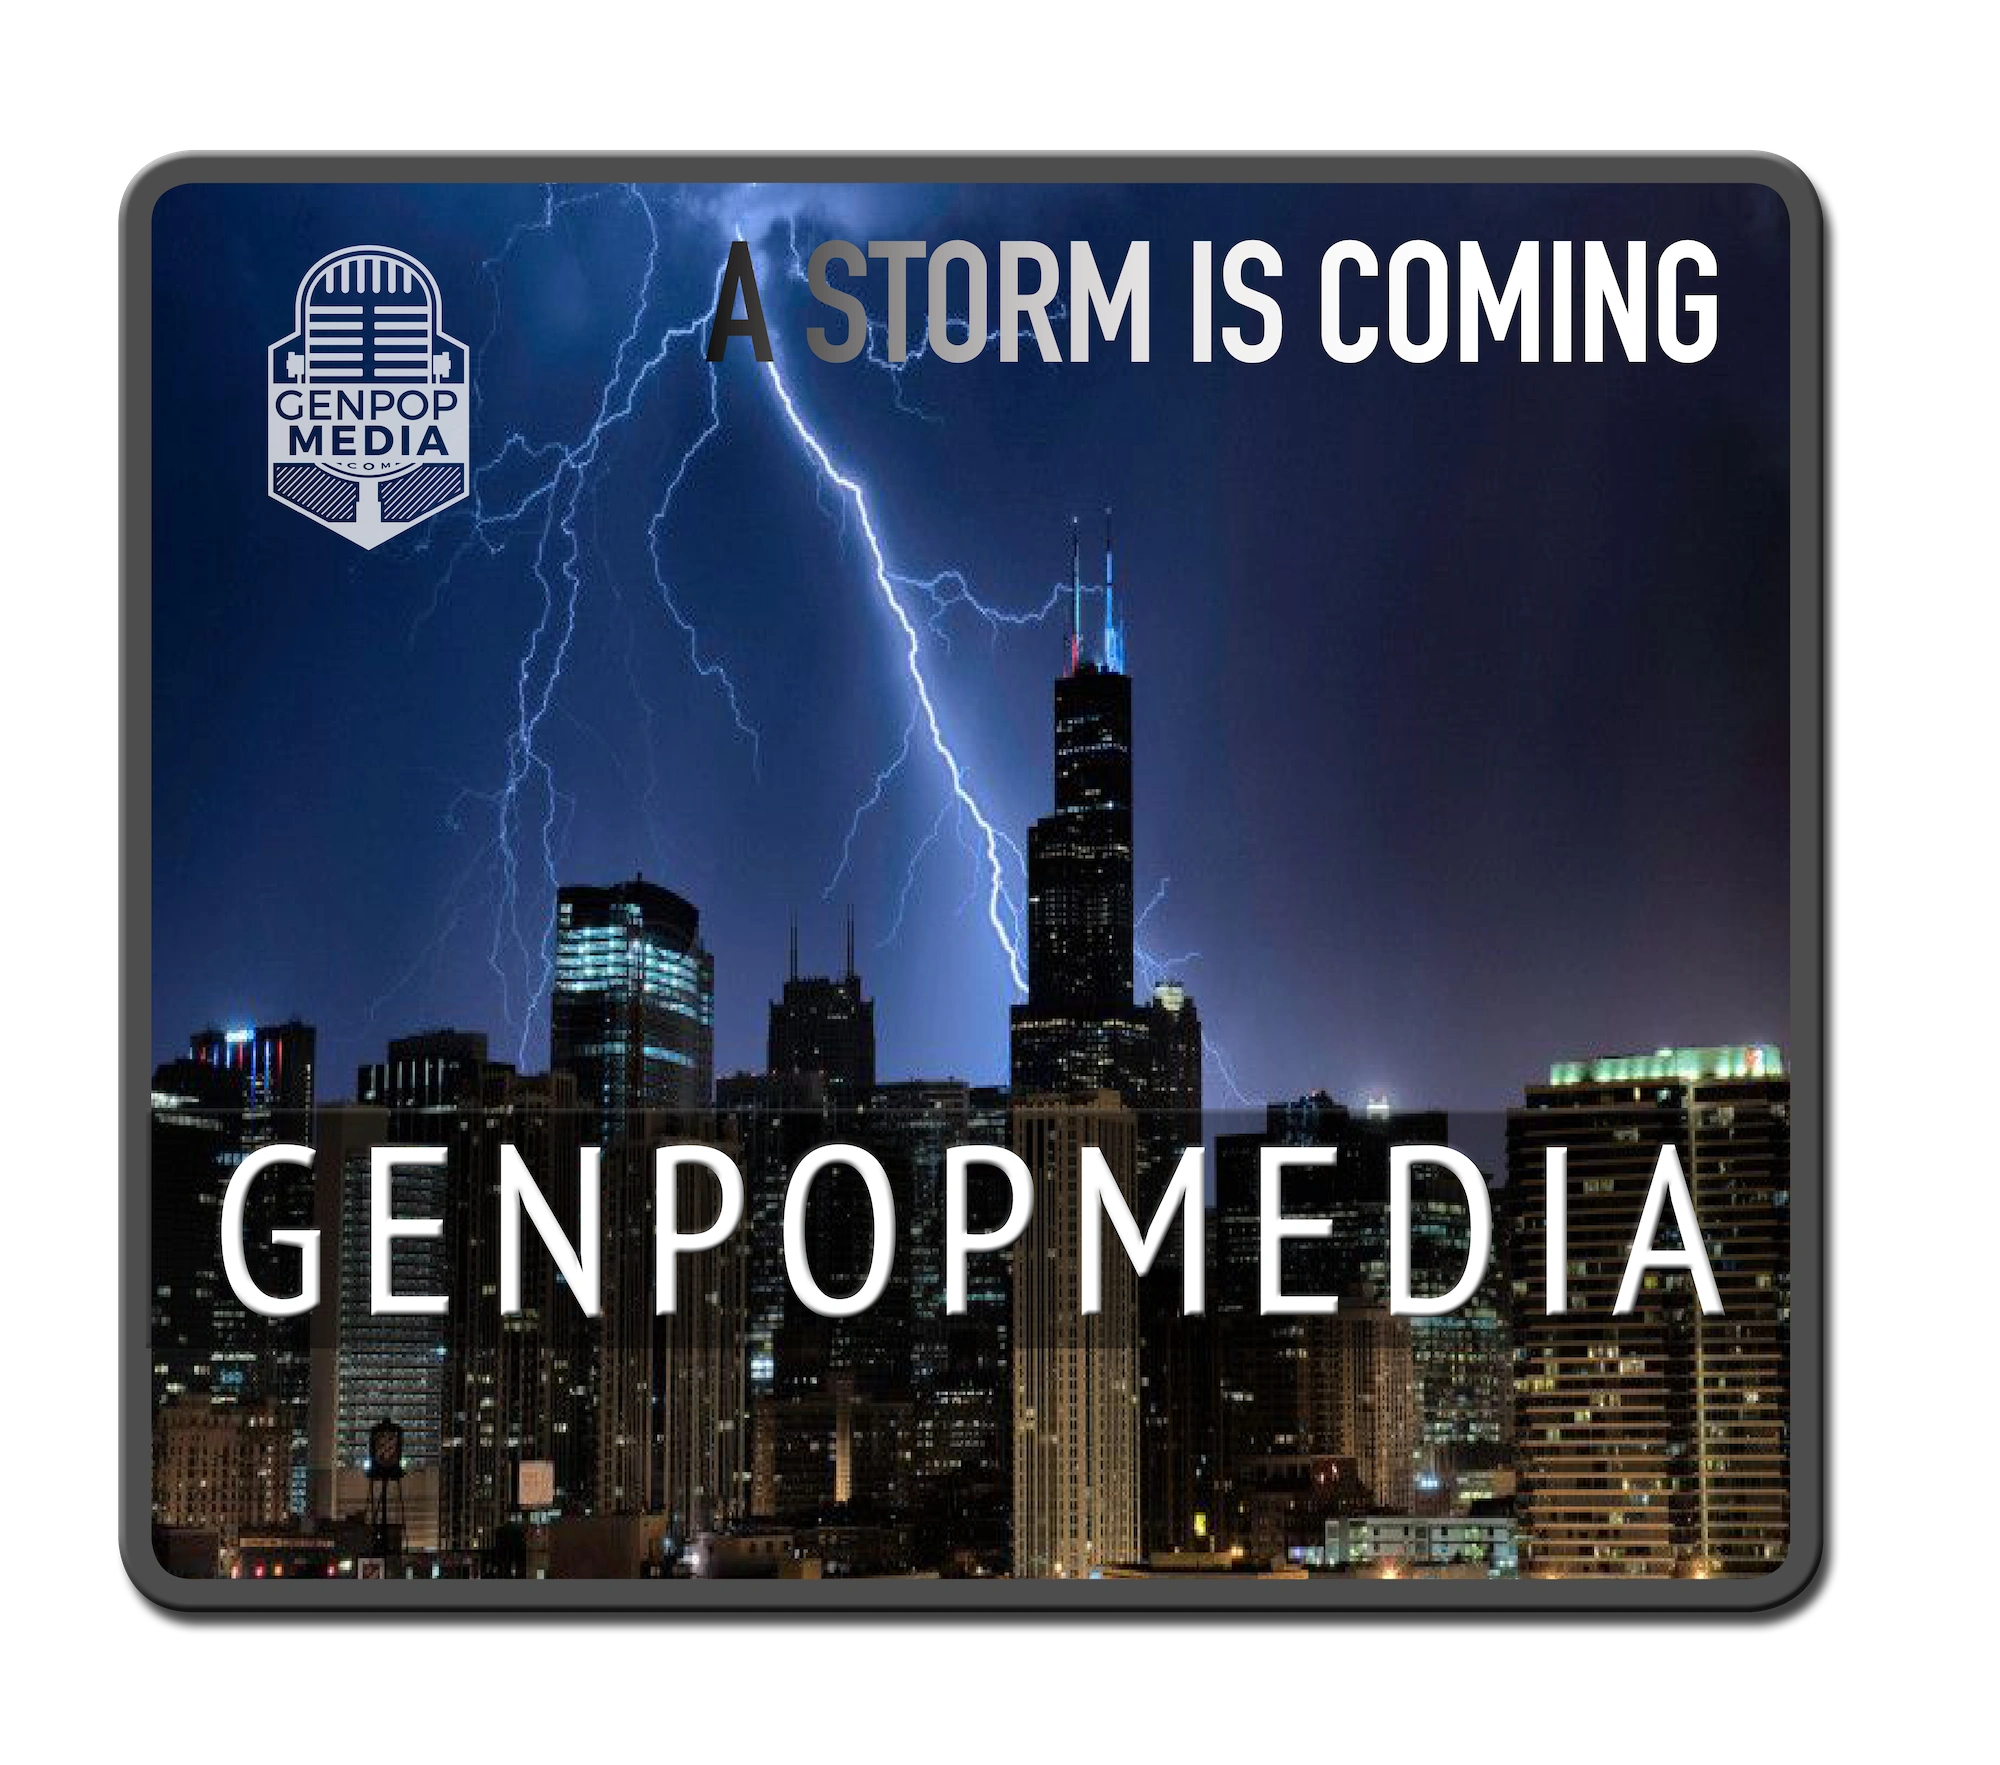 GenpopMedia Emergency Bulletin:  A Storm is Coming.  From Chicago & Detroit to the world.